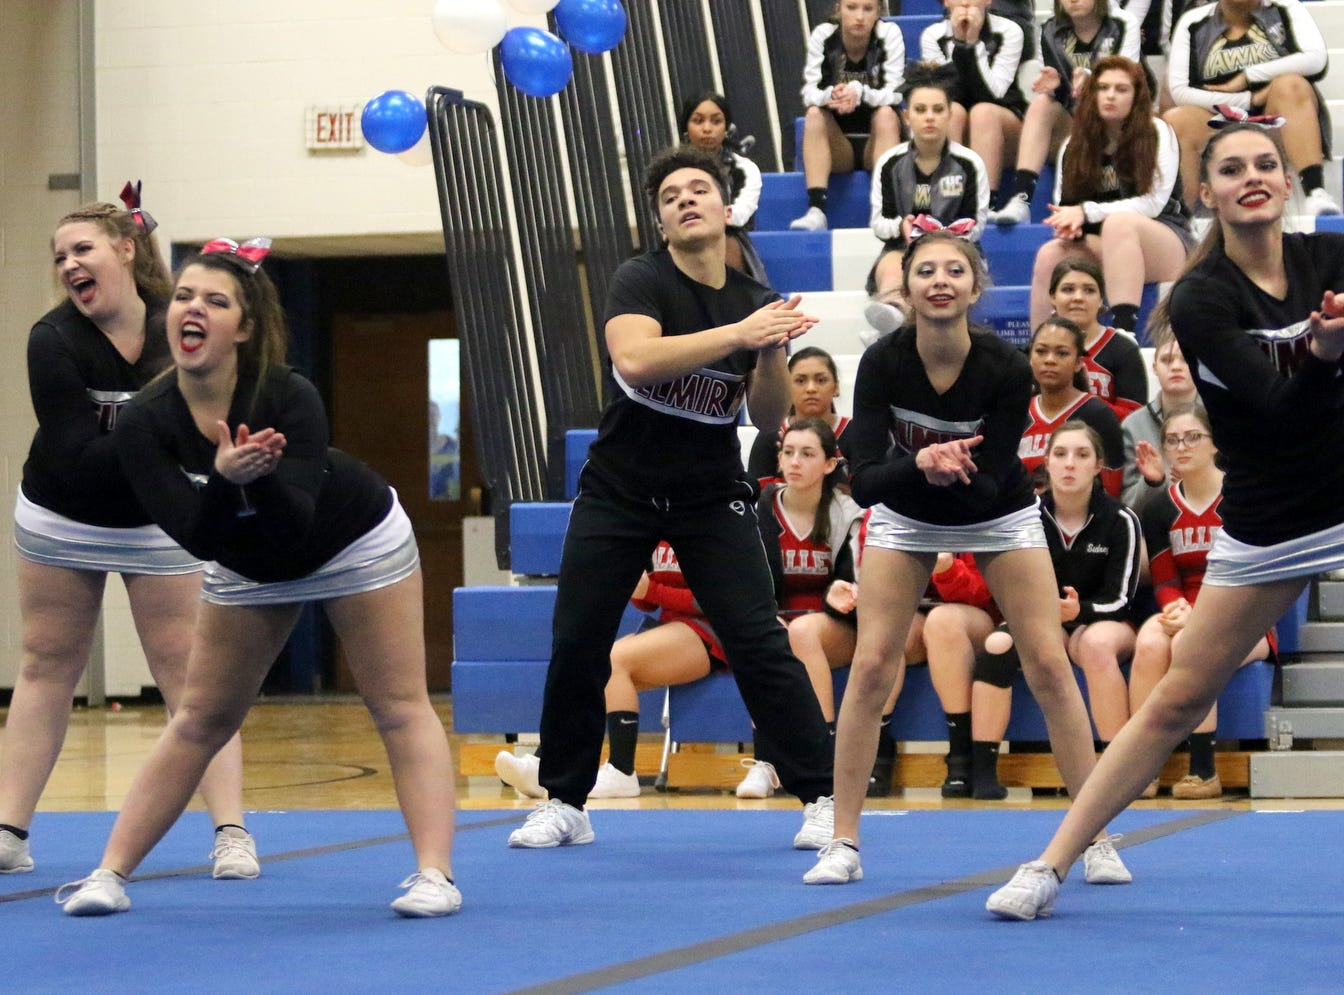 Elmira varsity cheerleaders compete at the STAC Winter Cheer Championships on Feb. 16, 2019 at Horseheads Middle School.